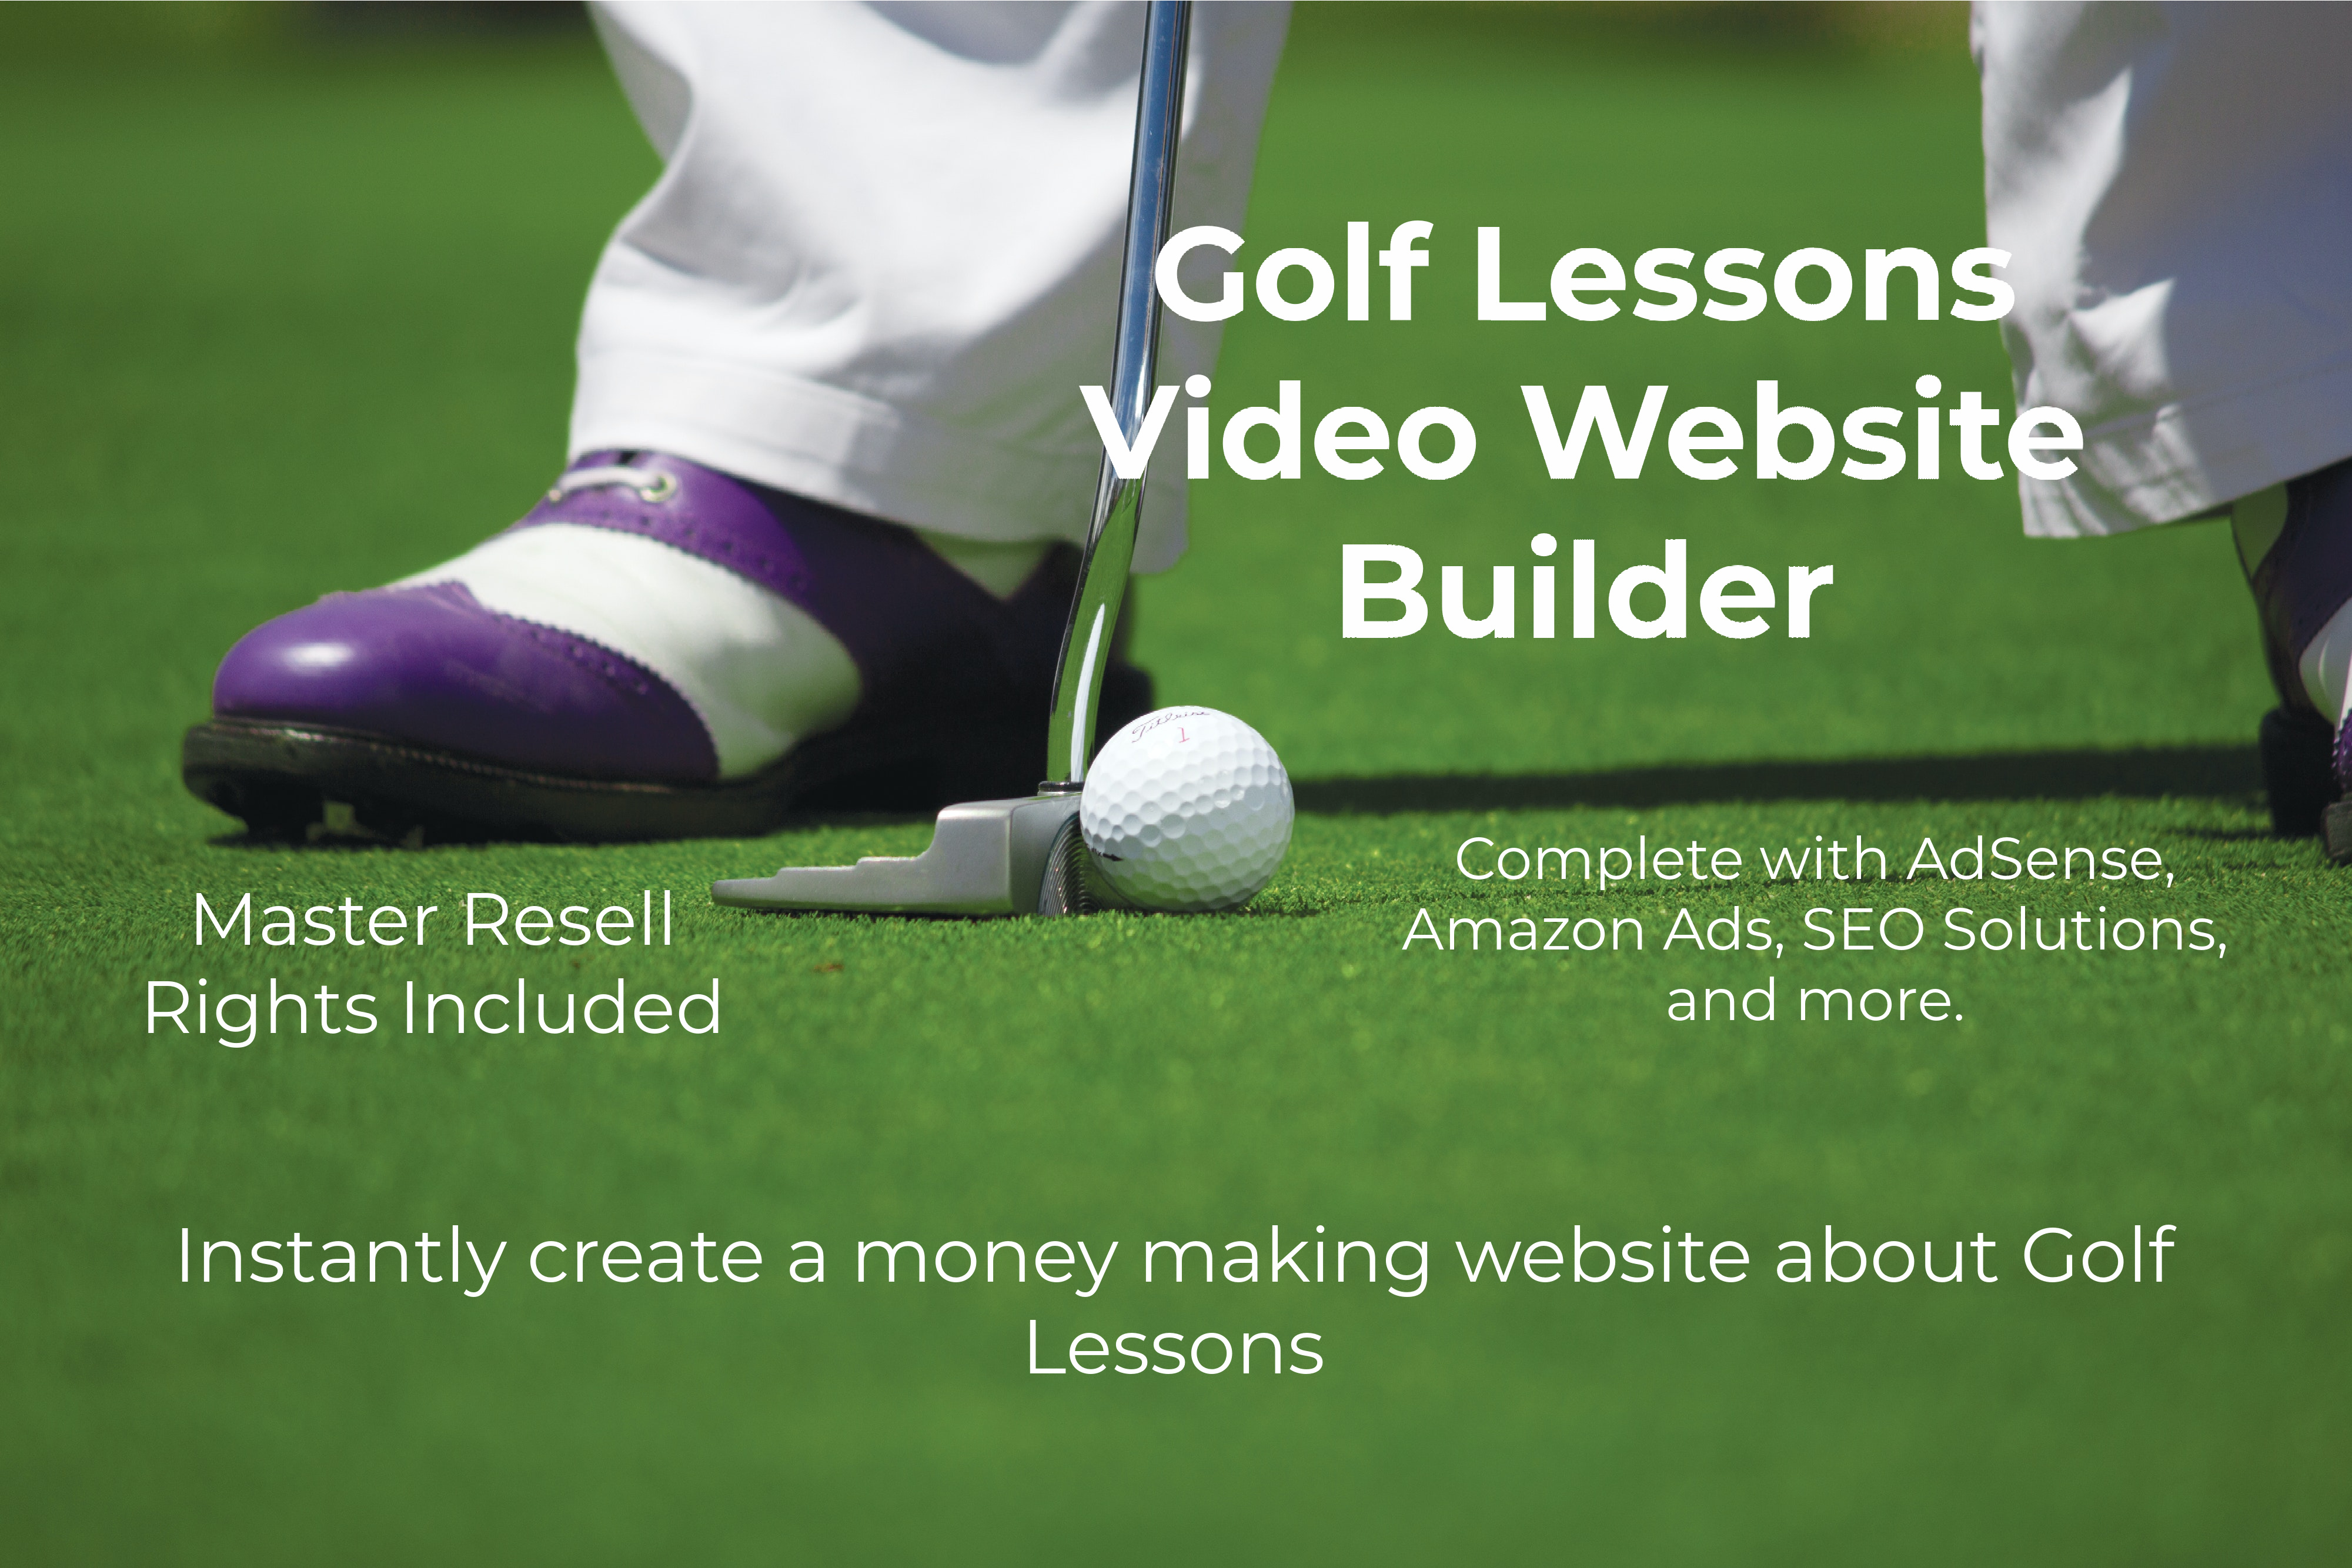 Golf Lessons Video Website Builder With AdSense,  Amazon Ads,  SEO,  and MRR